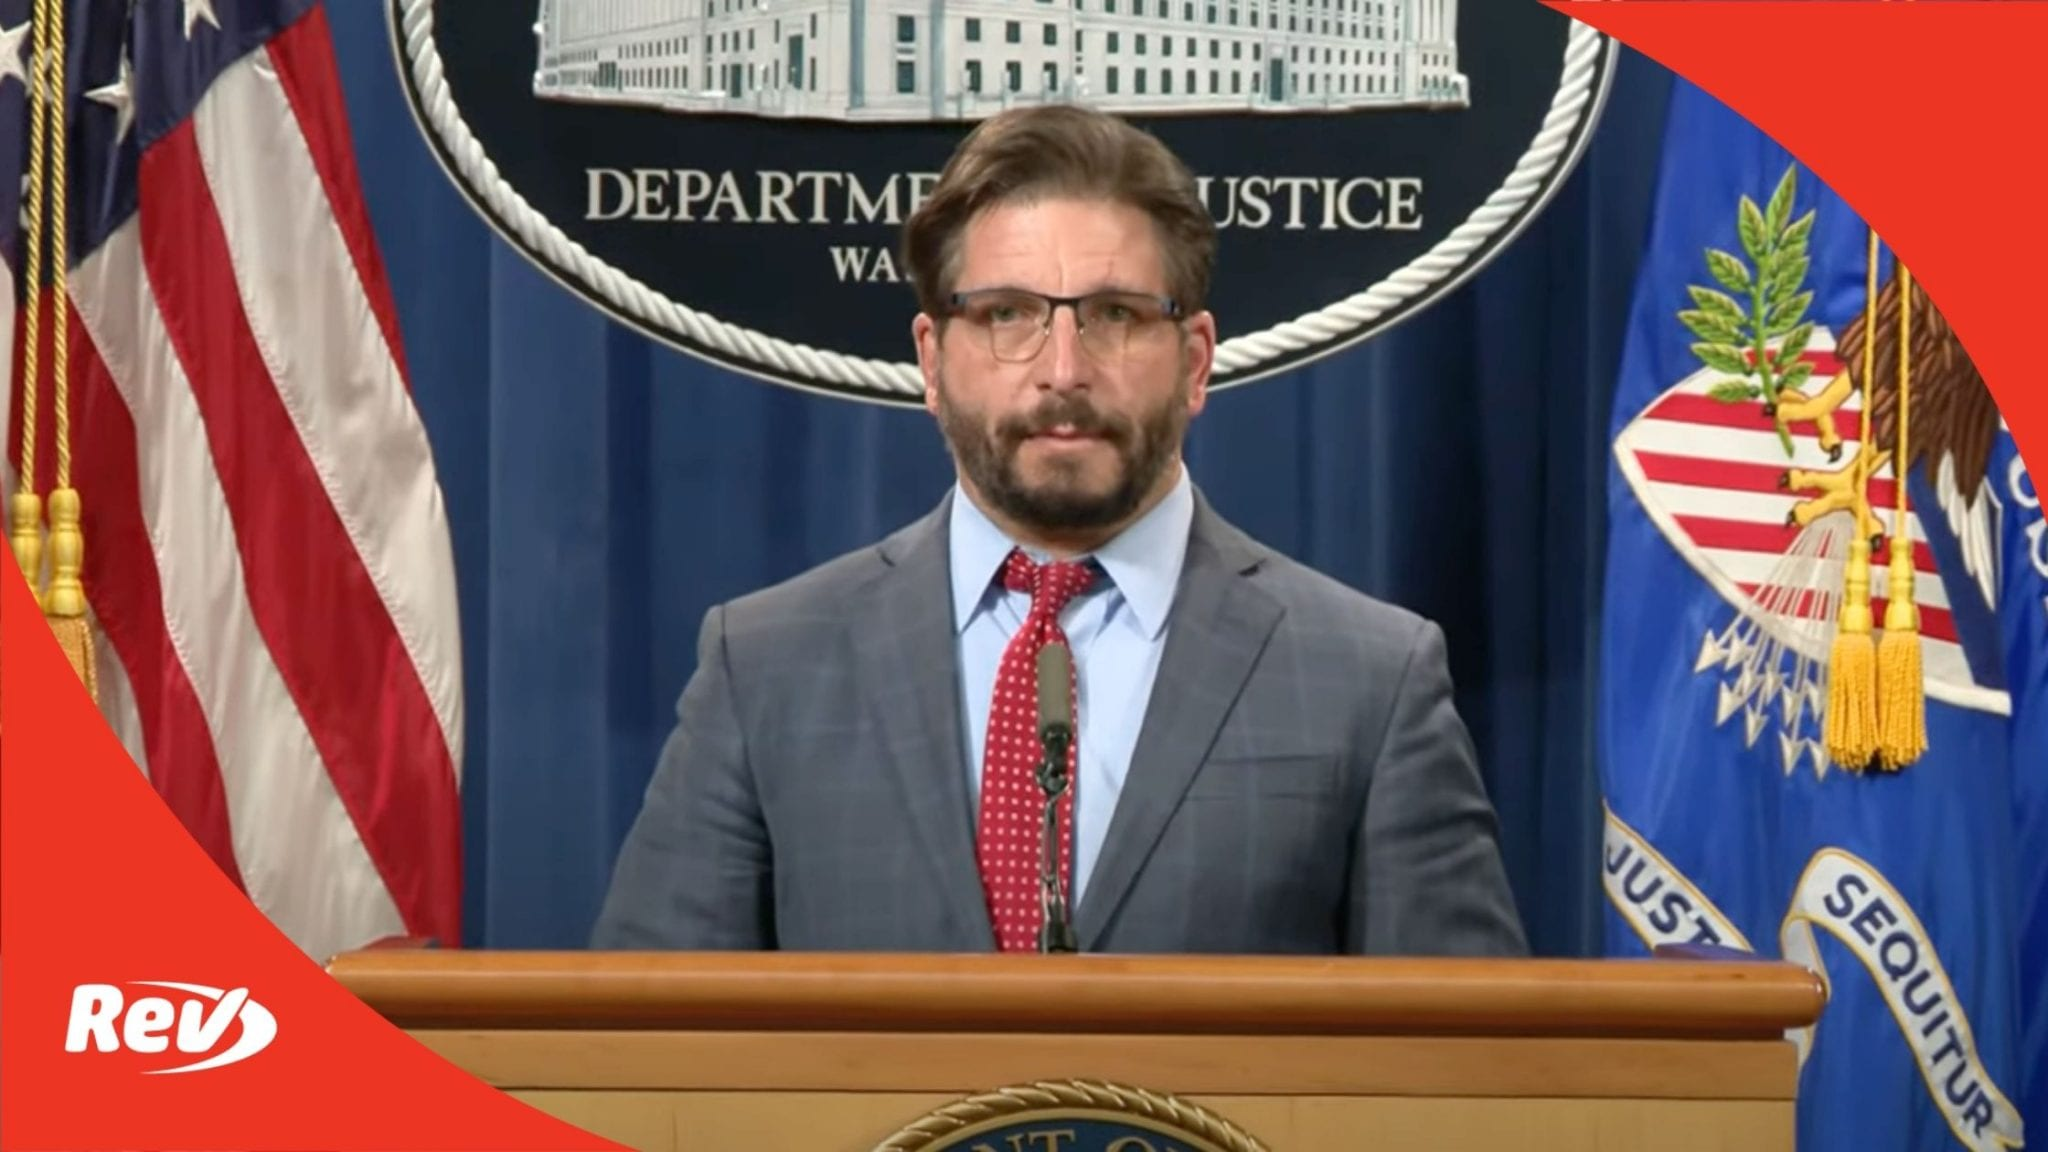 FBI and Justice Department Press Conference on Capitol Riots